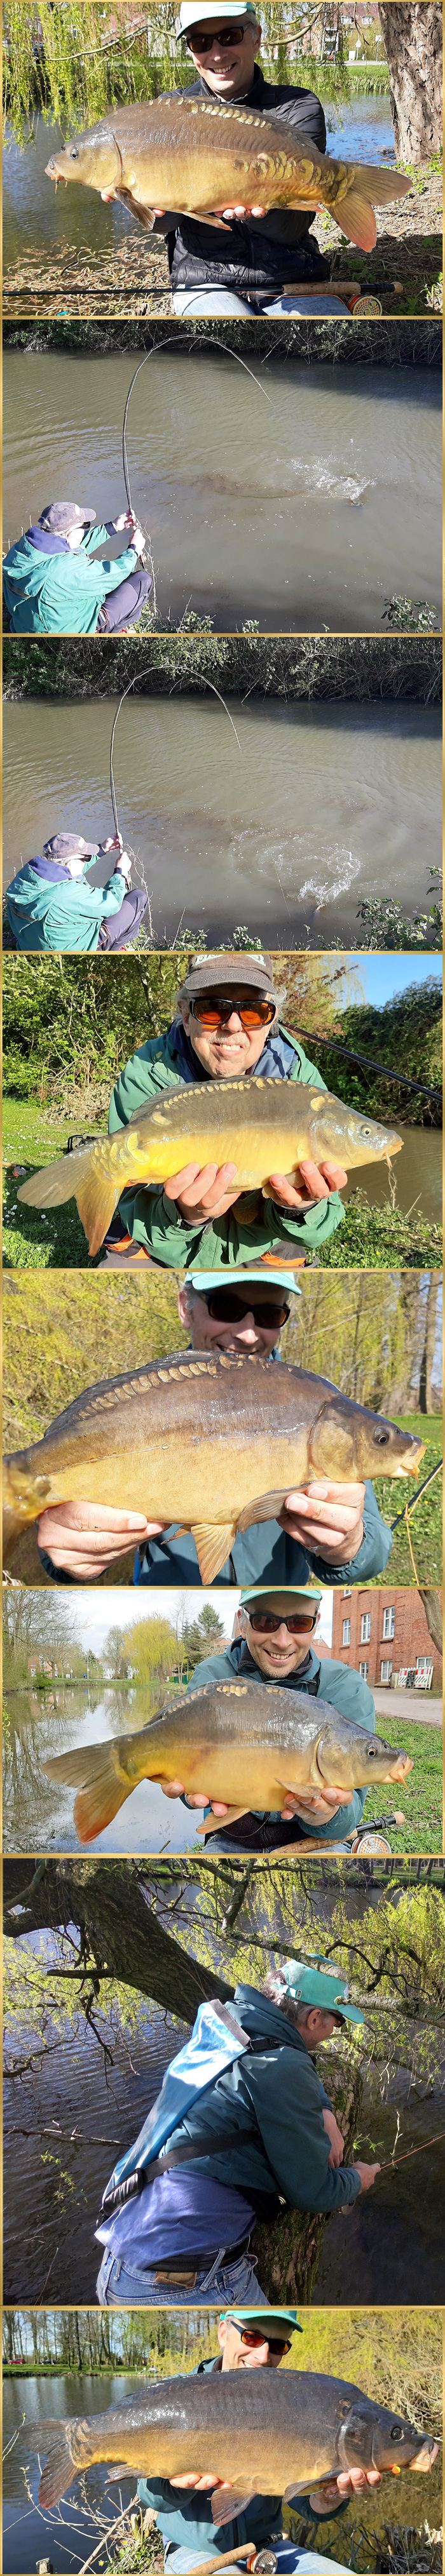 carp angling fly fishing